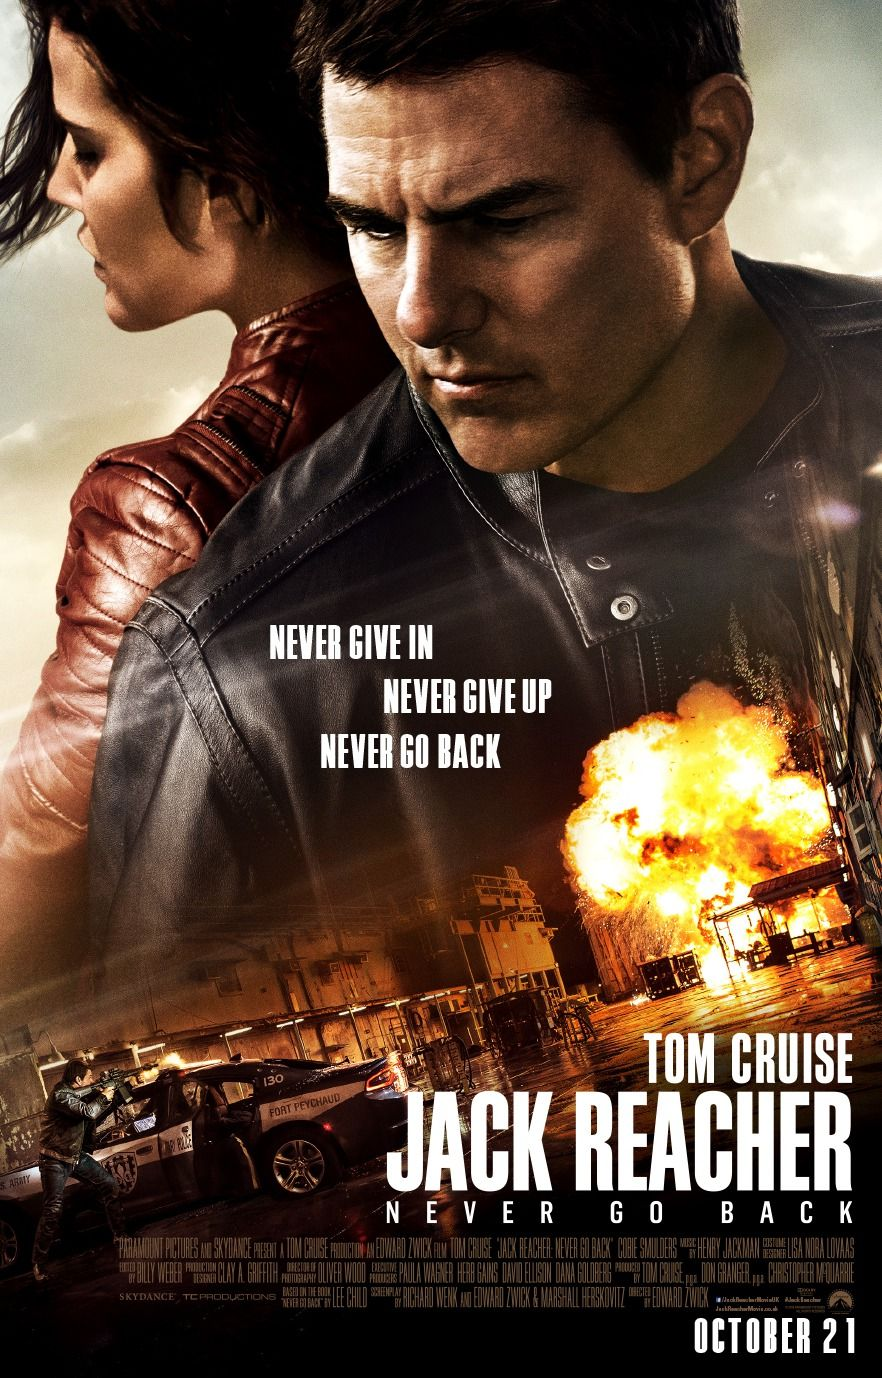 Laura steele tom griswold wedding - Jack Reacher Never Go Back Is De Nieuwe Actie Thriller Met Tom Cruise Mission Impossible Franchise Edge Of Tomorrow Van Regisseur Edward Zwick The Last